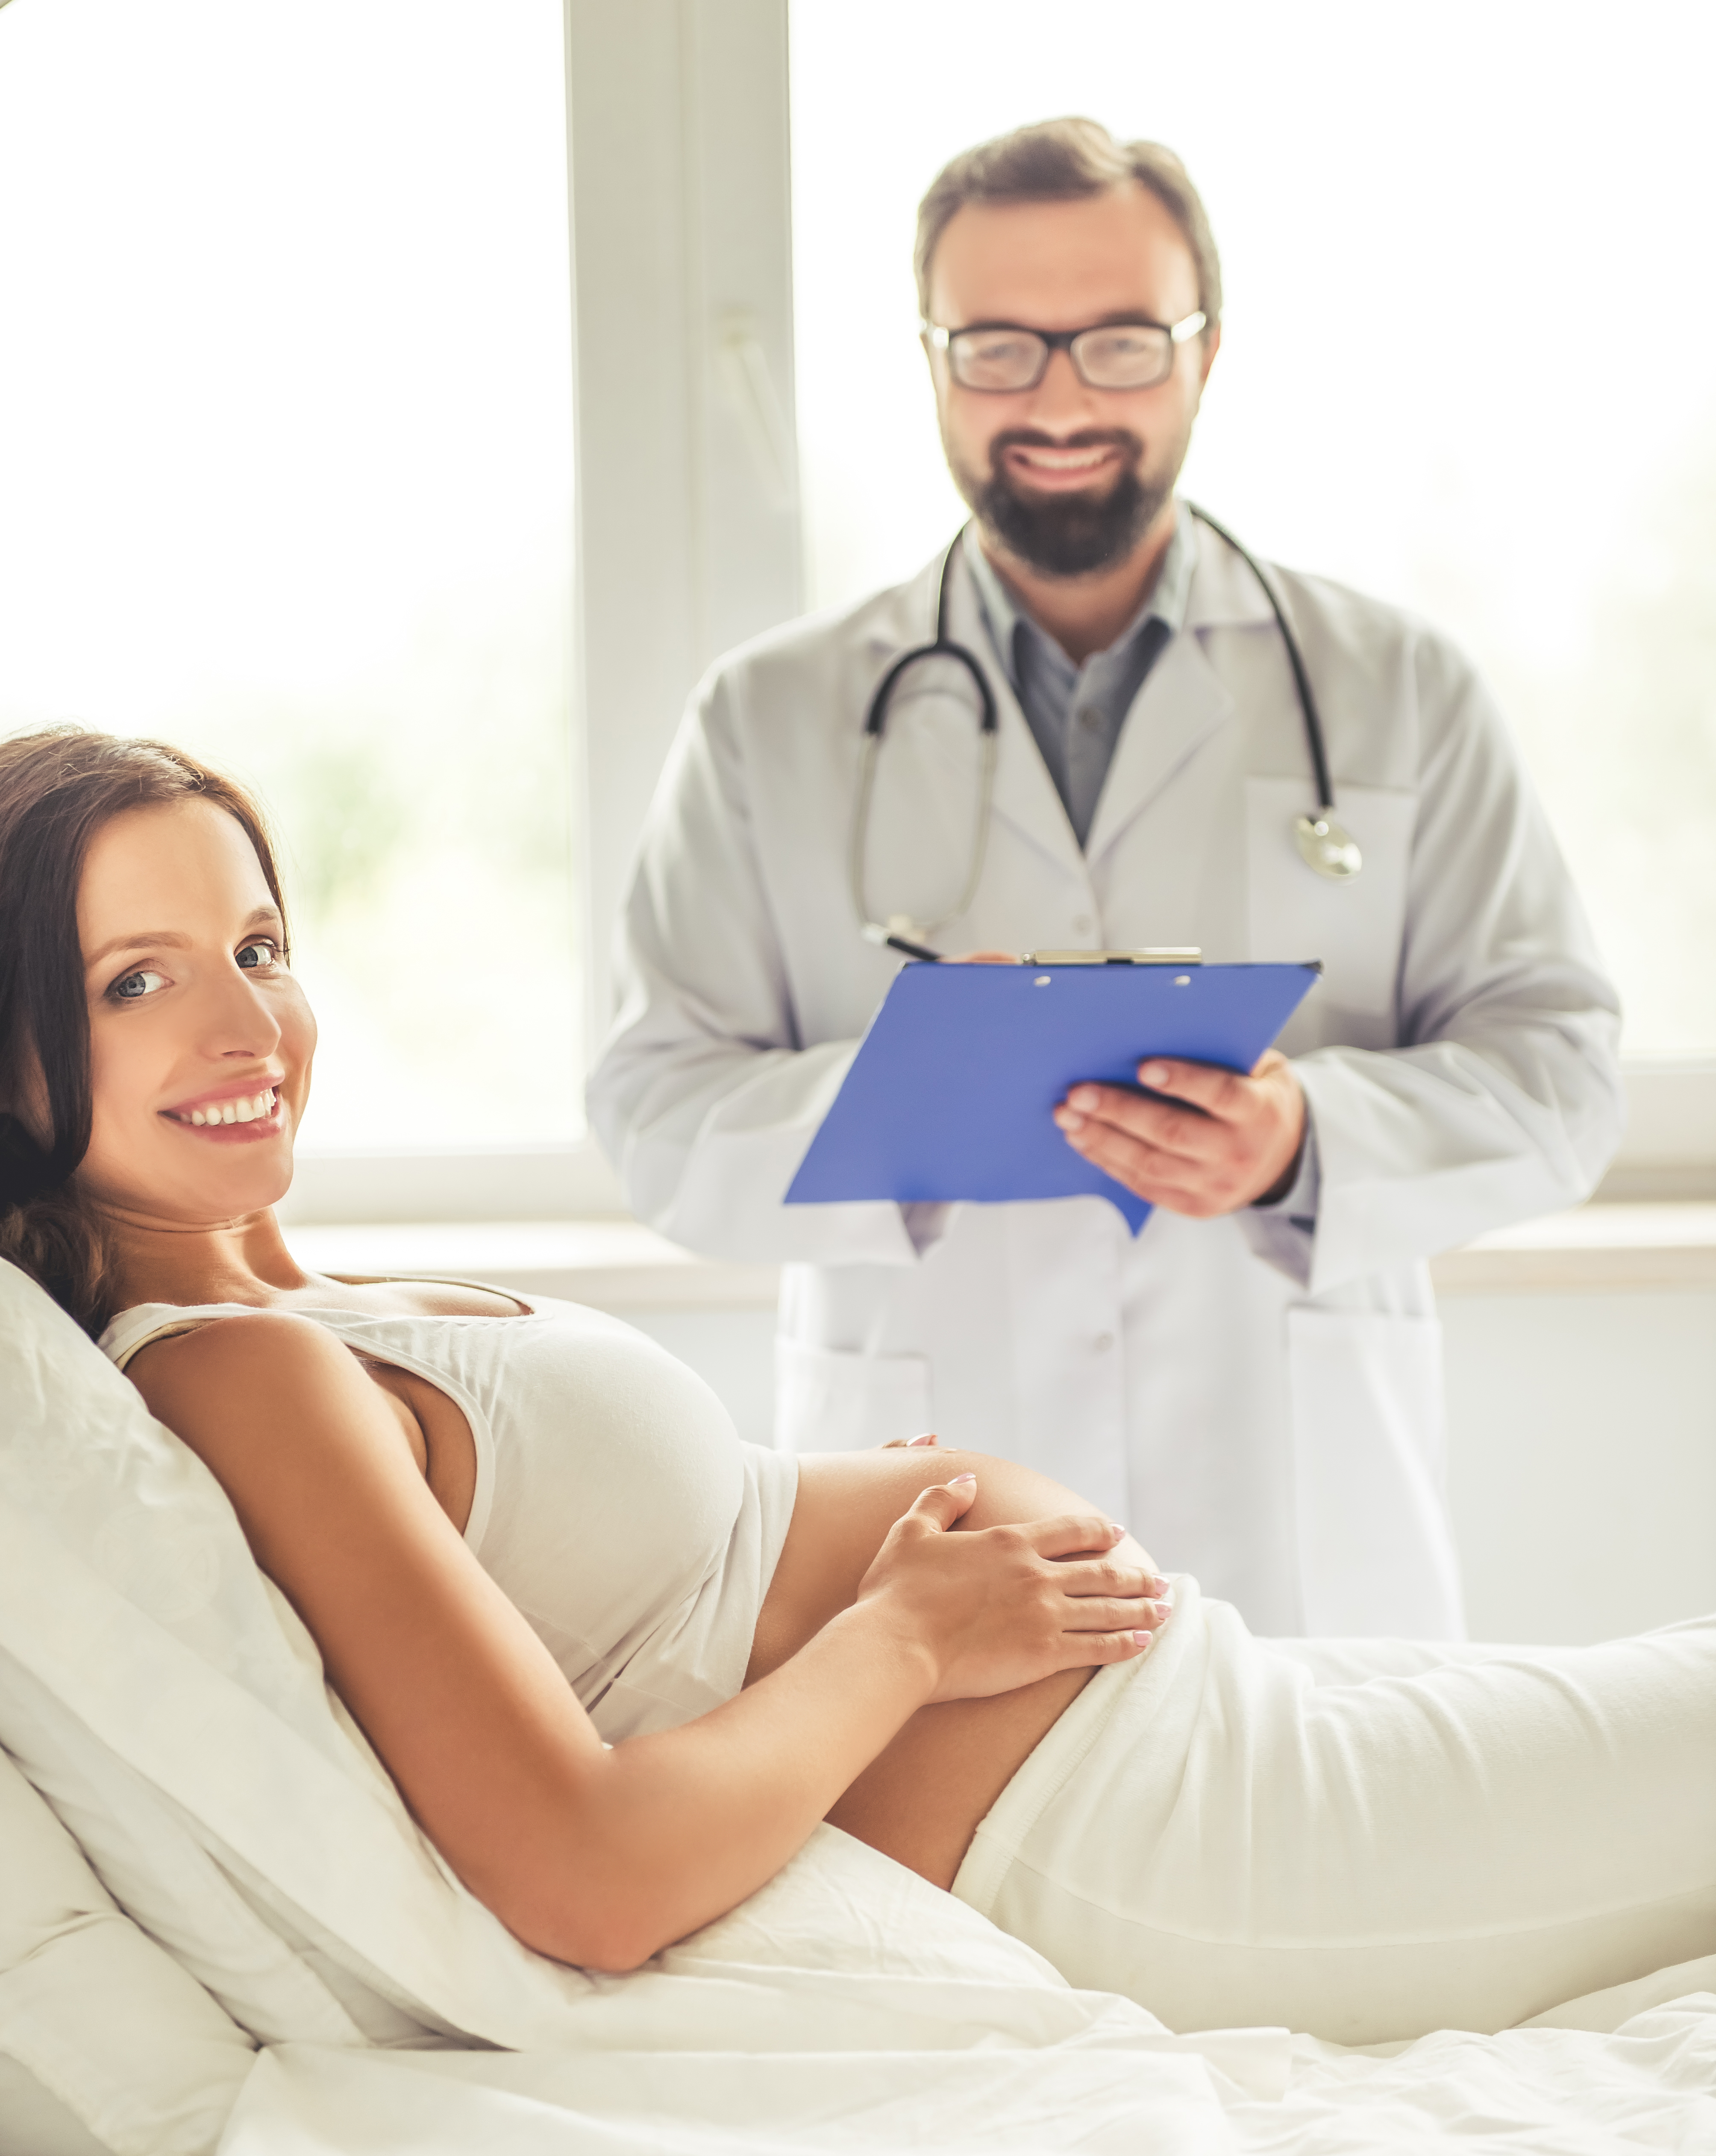 Beautiful pregnant young woman is touching her bare tummy while a handsome doctor is making notes. Both are looking at camera and smiling